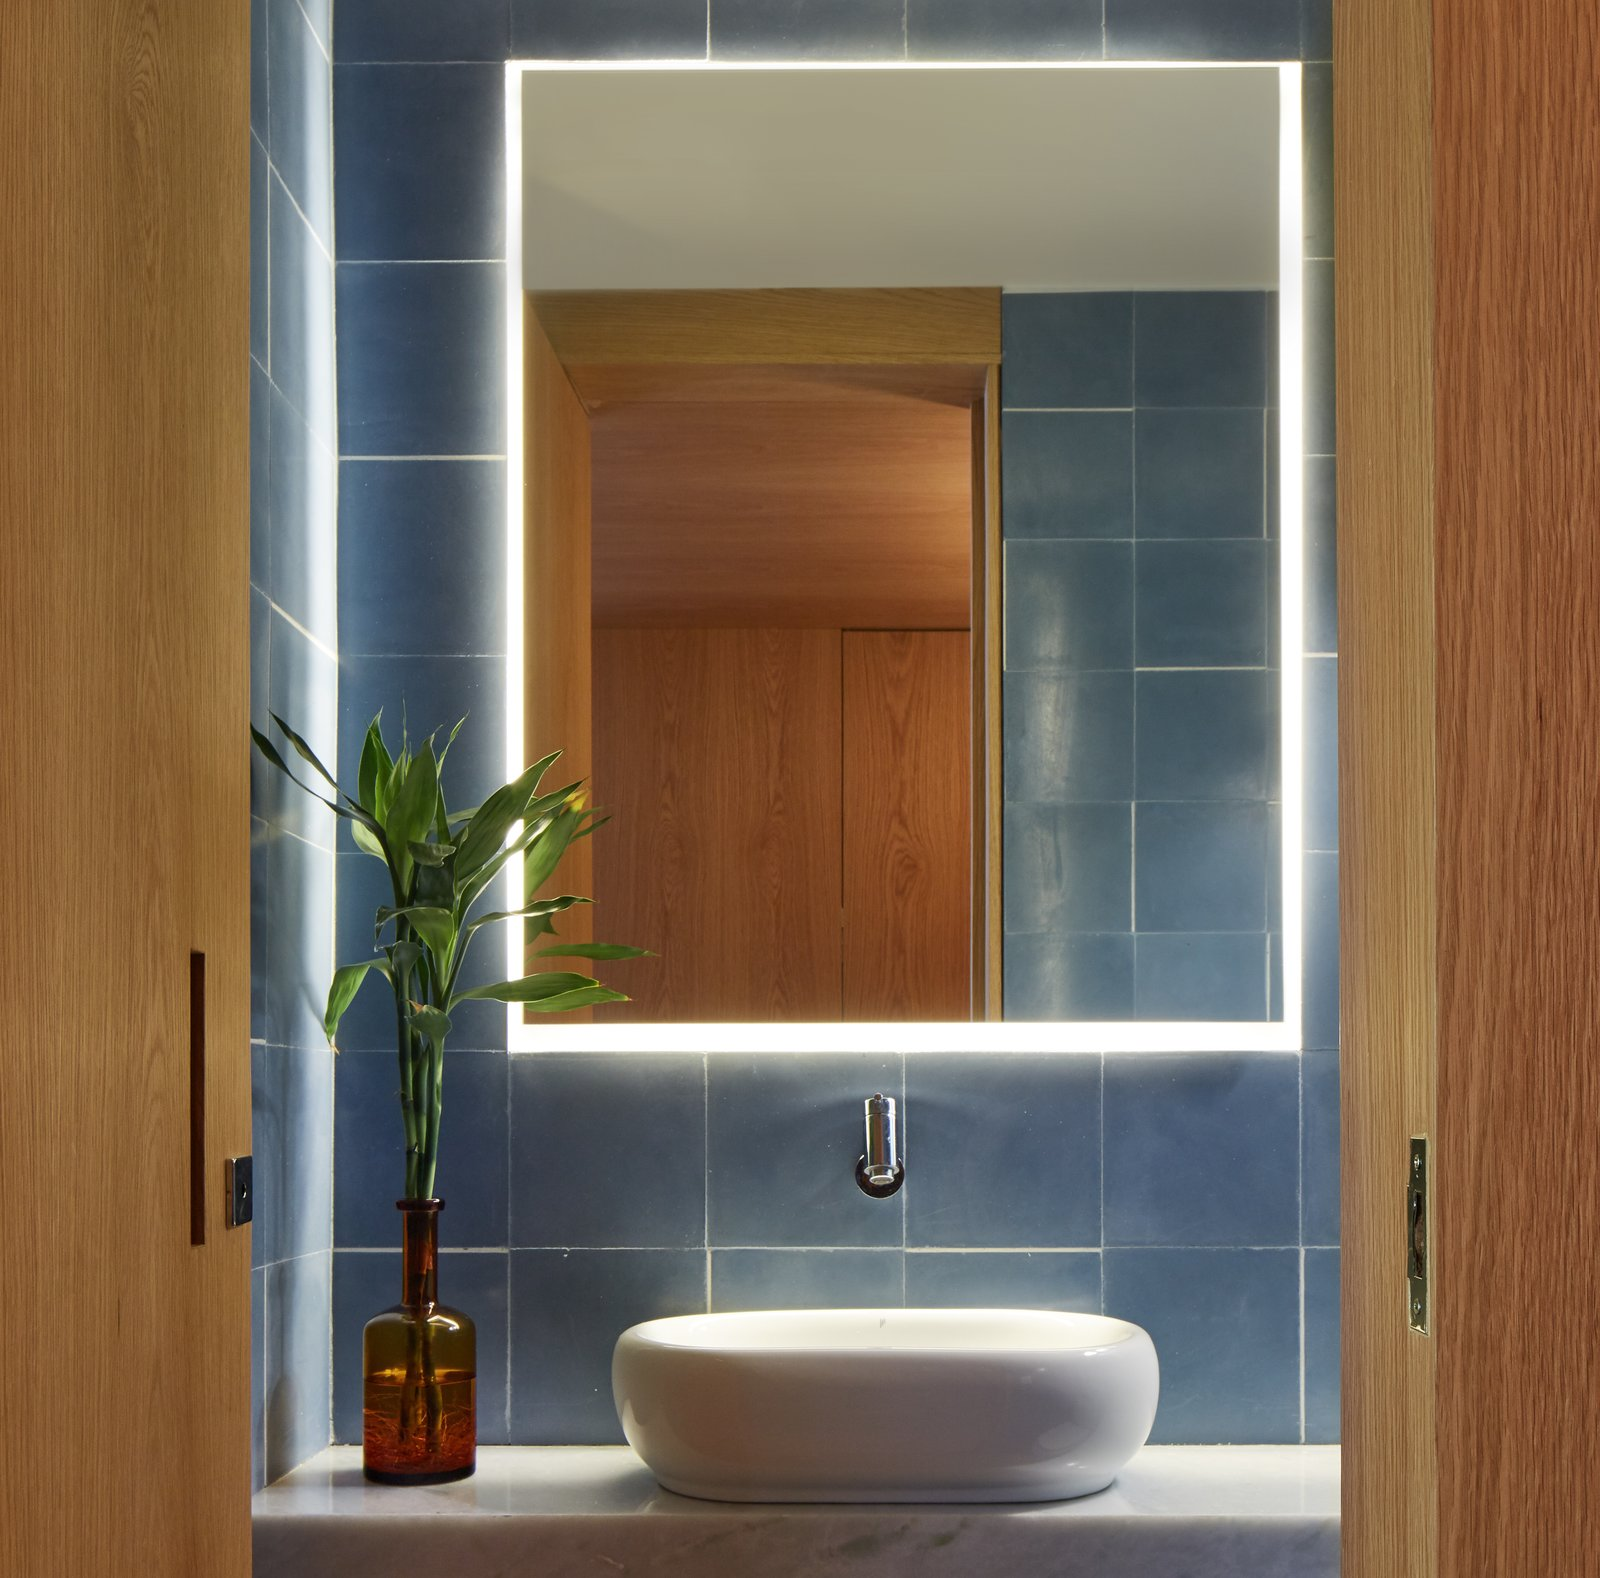 A deep earthy blue tile plays off the richness of the wood in this bathroom.